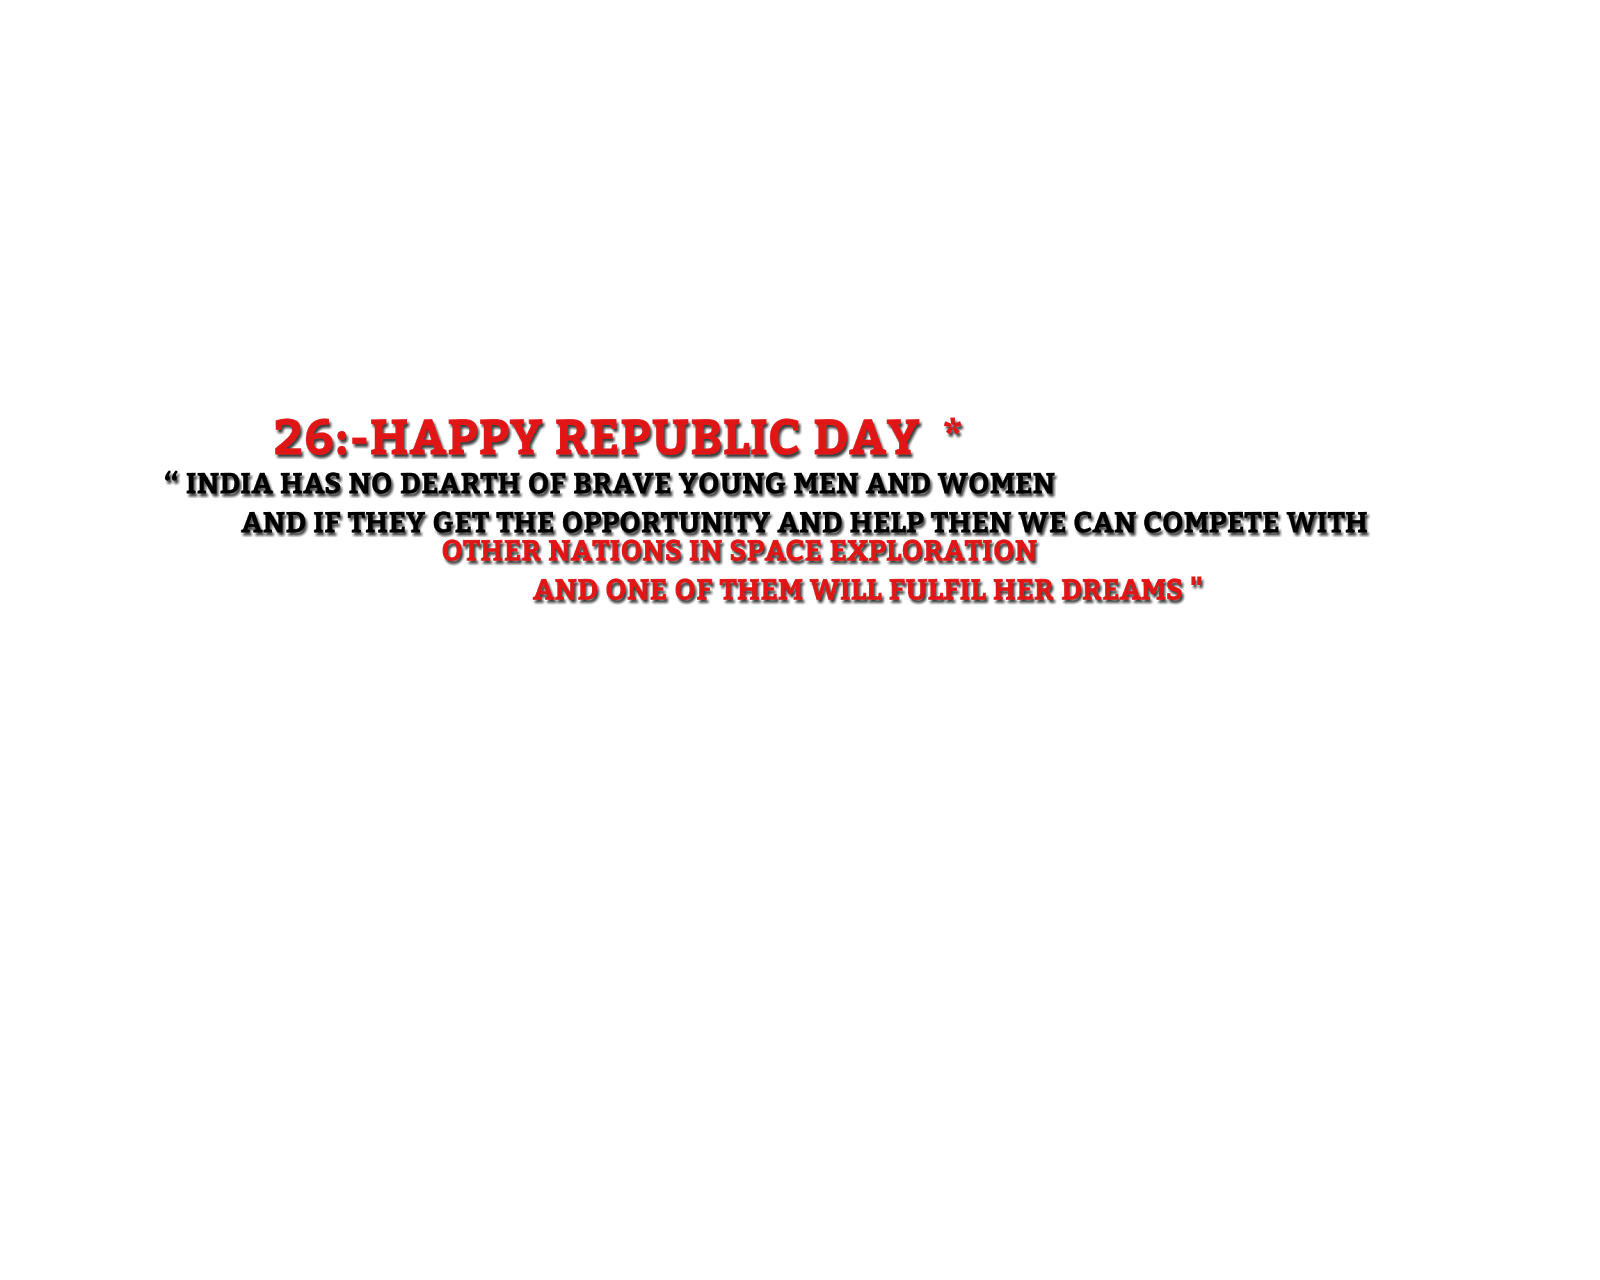 Png picsart download. Republic day image editing